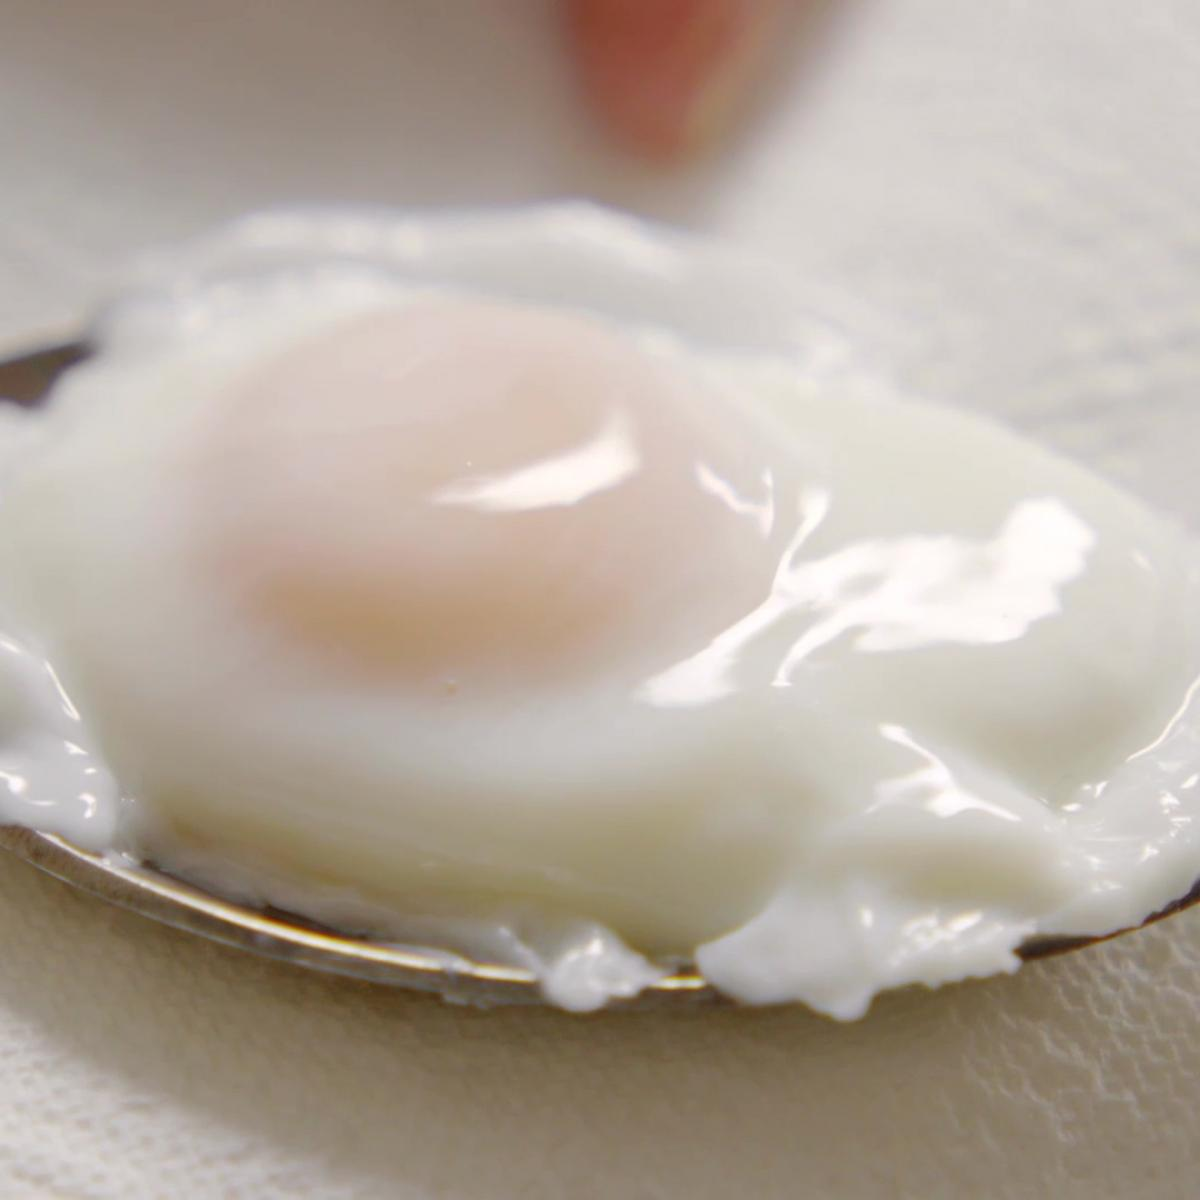 A picture of Delia's Poached Eggs recipe